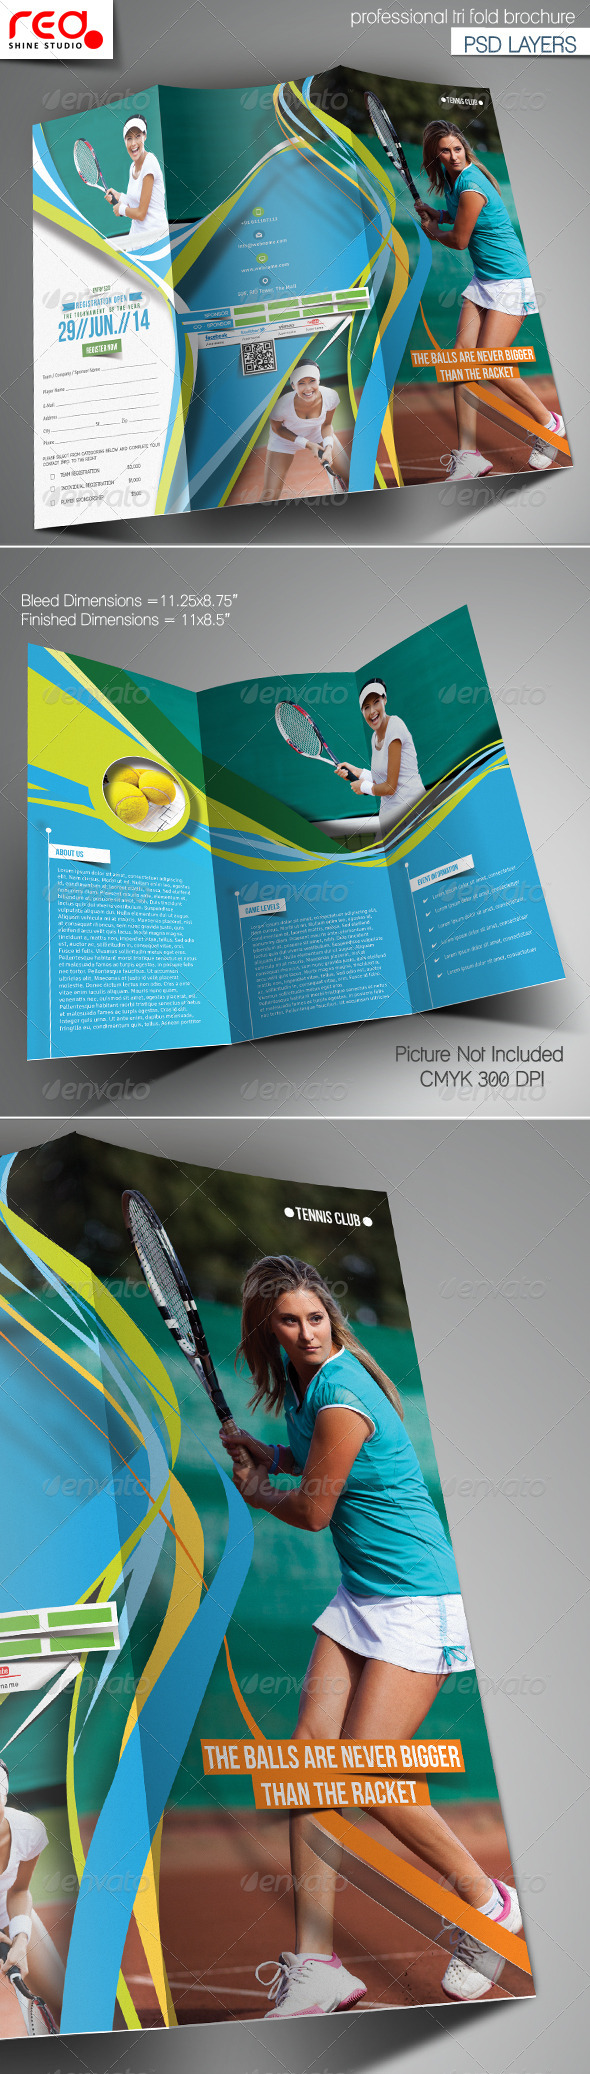 Tennis Club Trifold Brochure Template - Brochures Print Templates